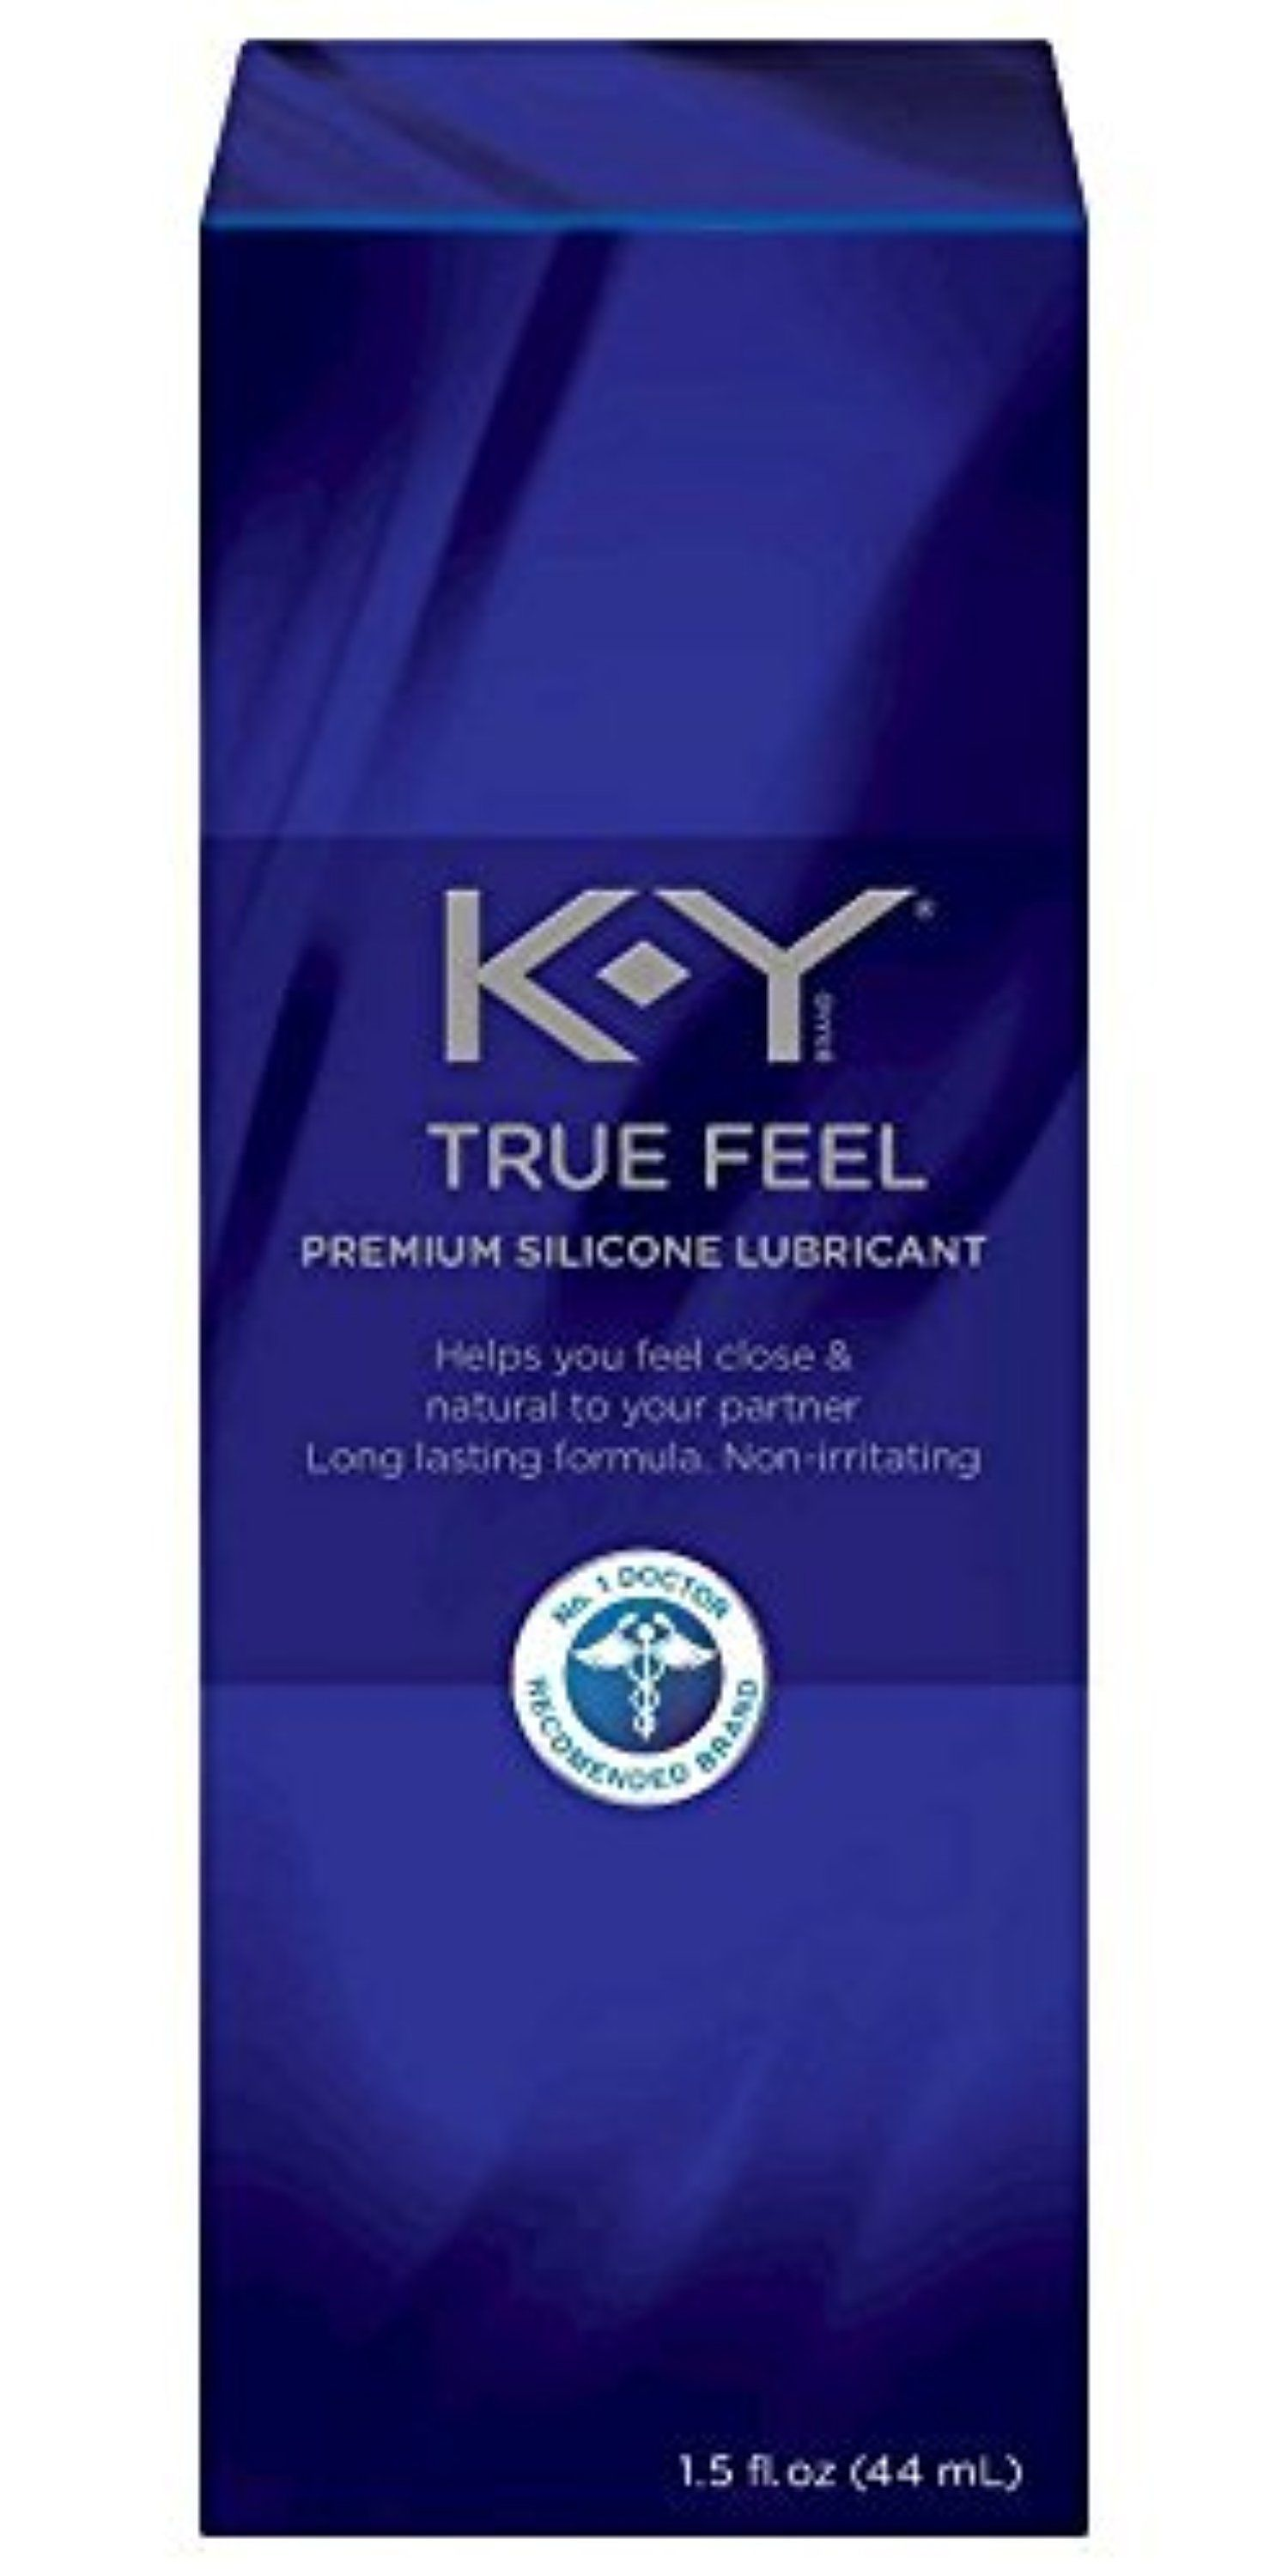 K-Y True Feel Premium Silicone Lube Long Lasting Personal Lubricant (1.5 Oz Bottle) by K-Y -- Awesome products selected by Anna Churchill